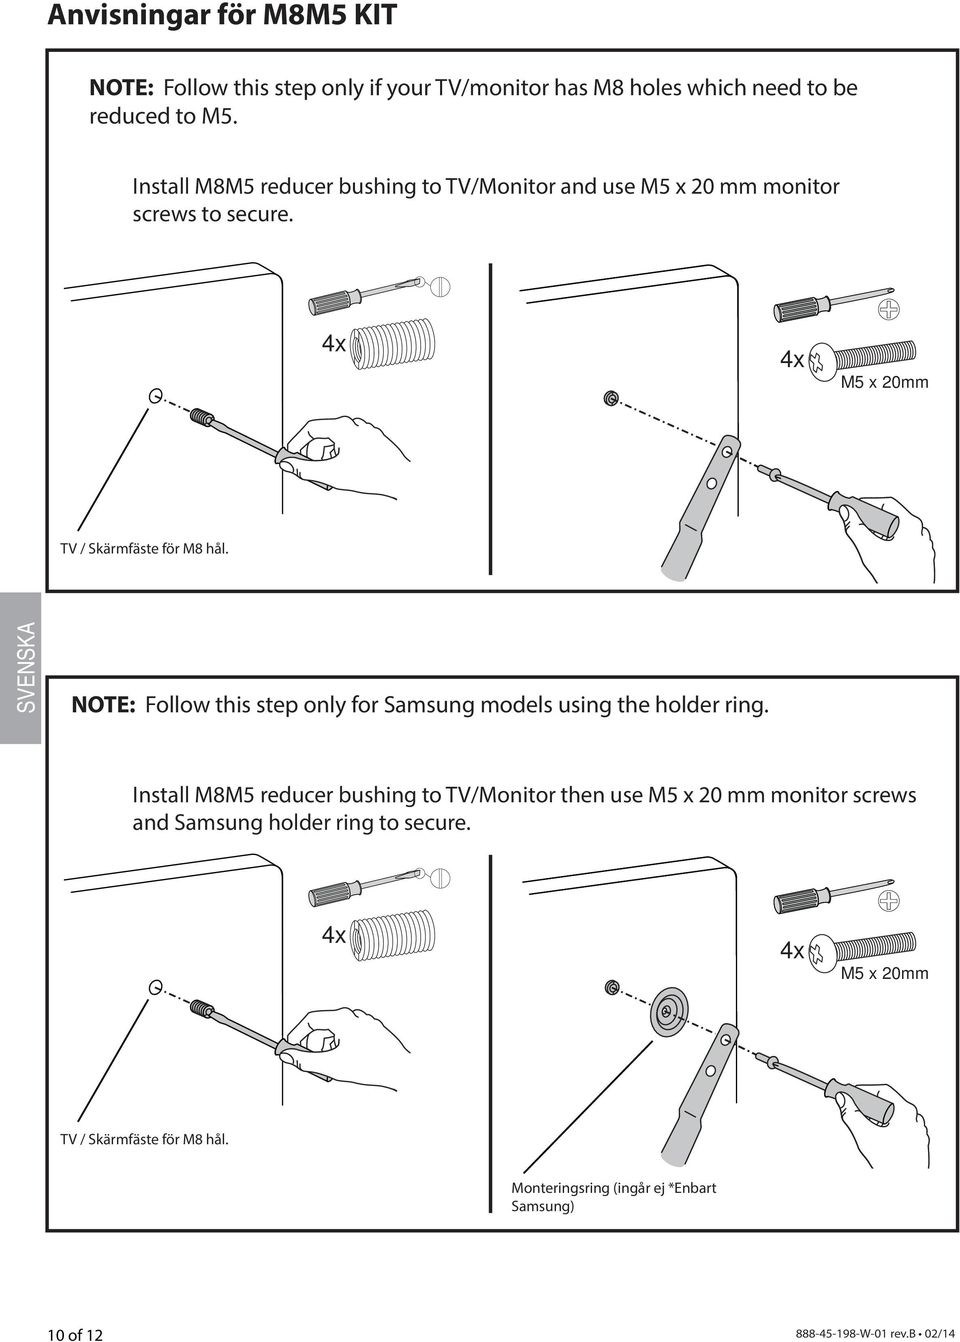 NOTE: Follow this step only for Samsung models using the holder ring.